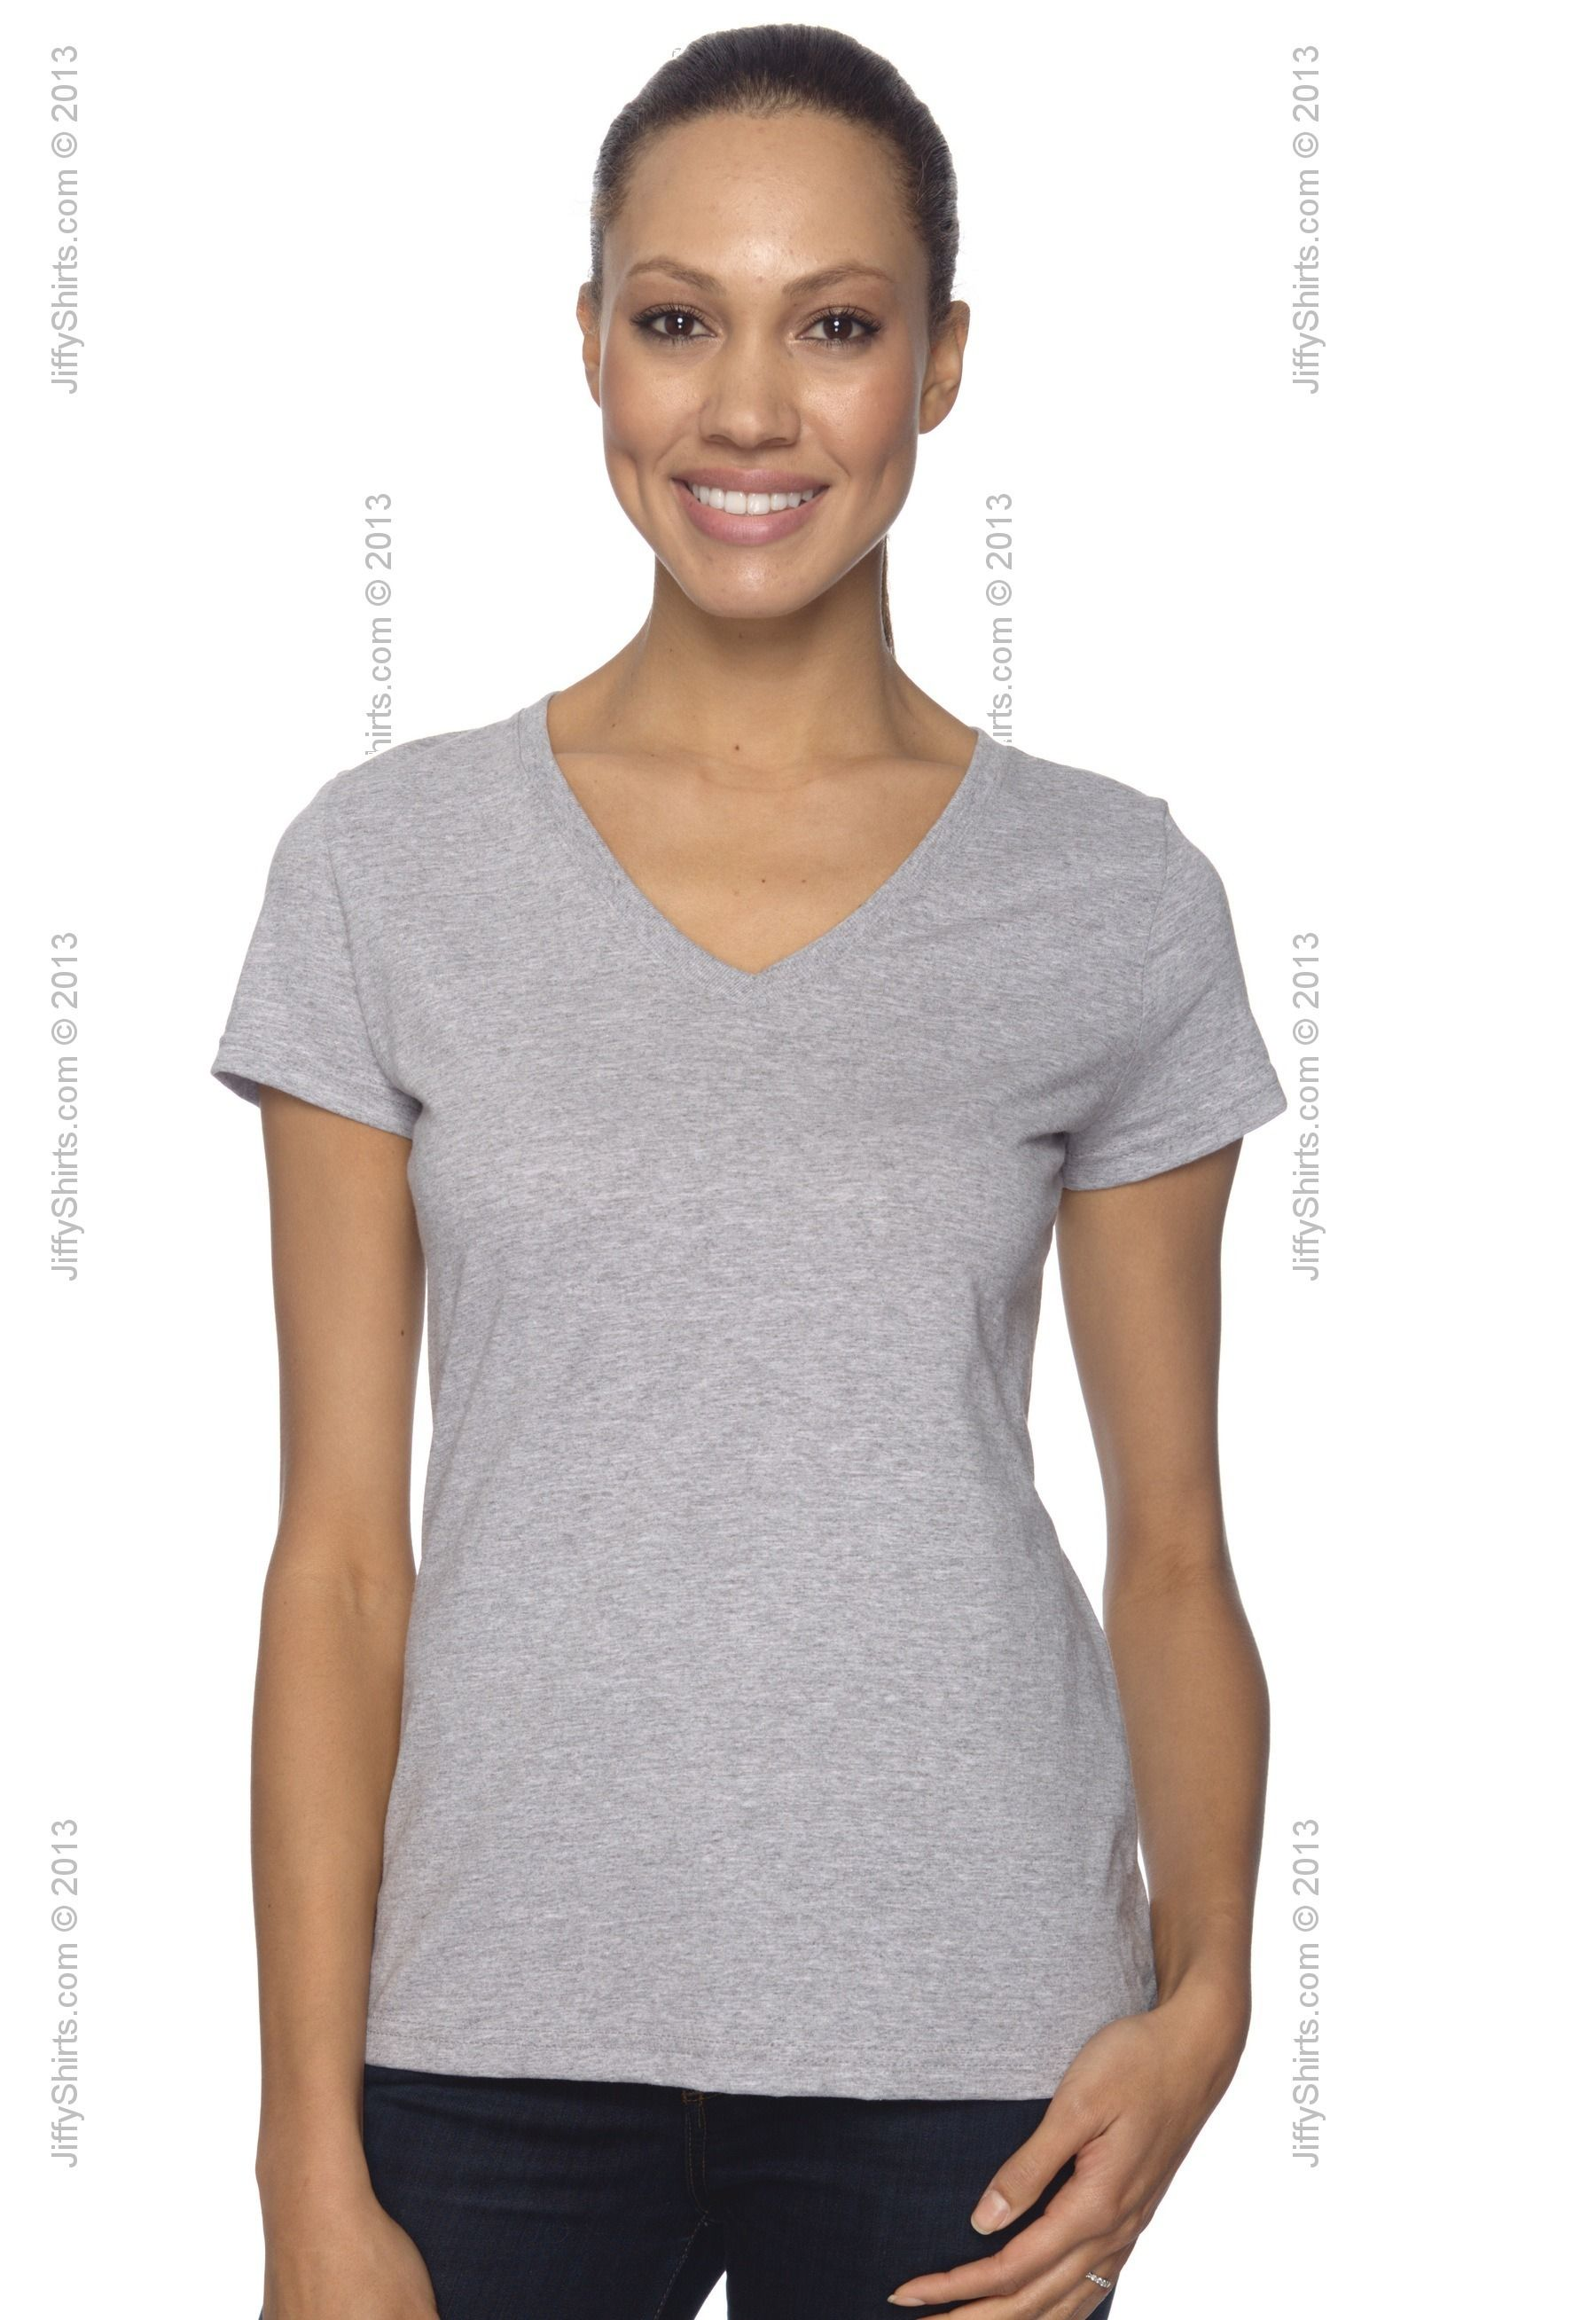 03c144af Fruit of the Loom L39VR Ladies' 5 oz. 100% Heavy Cotton HD V-Neck T-Shirt  from Fruit of the Loom All - JiffyShirts.com $4.83